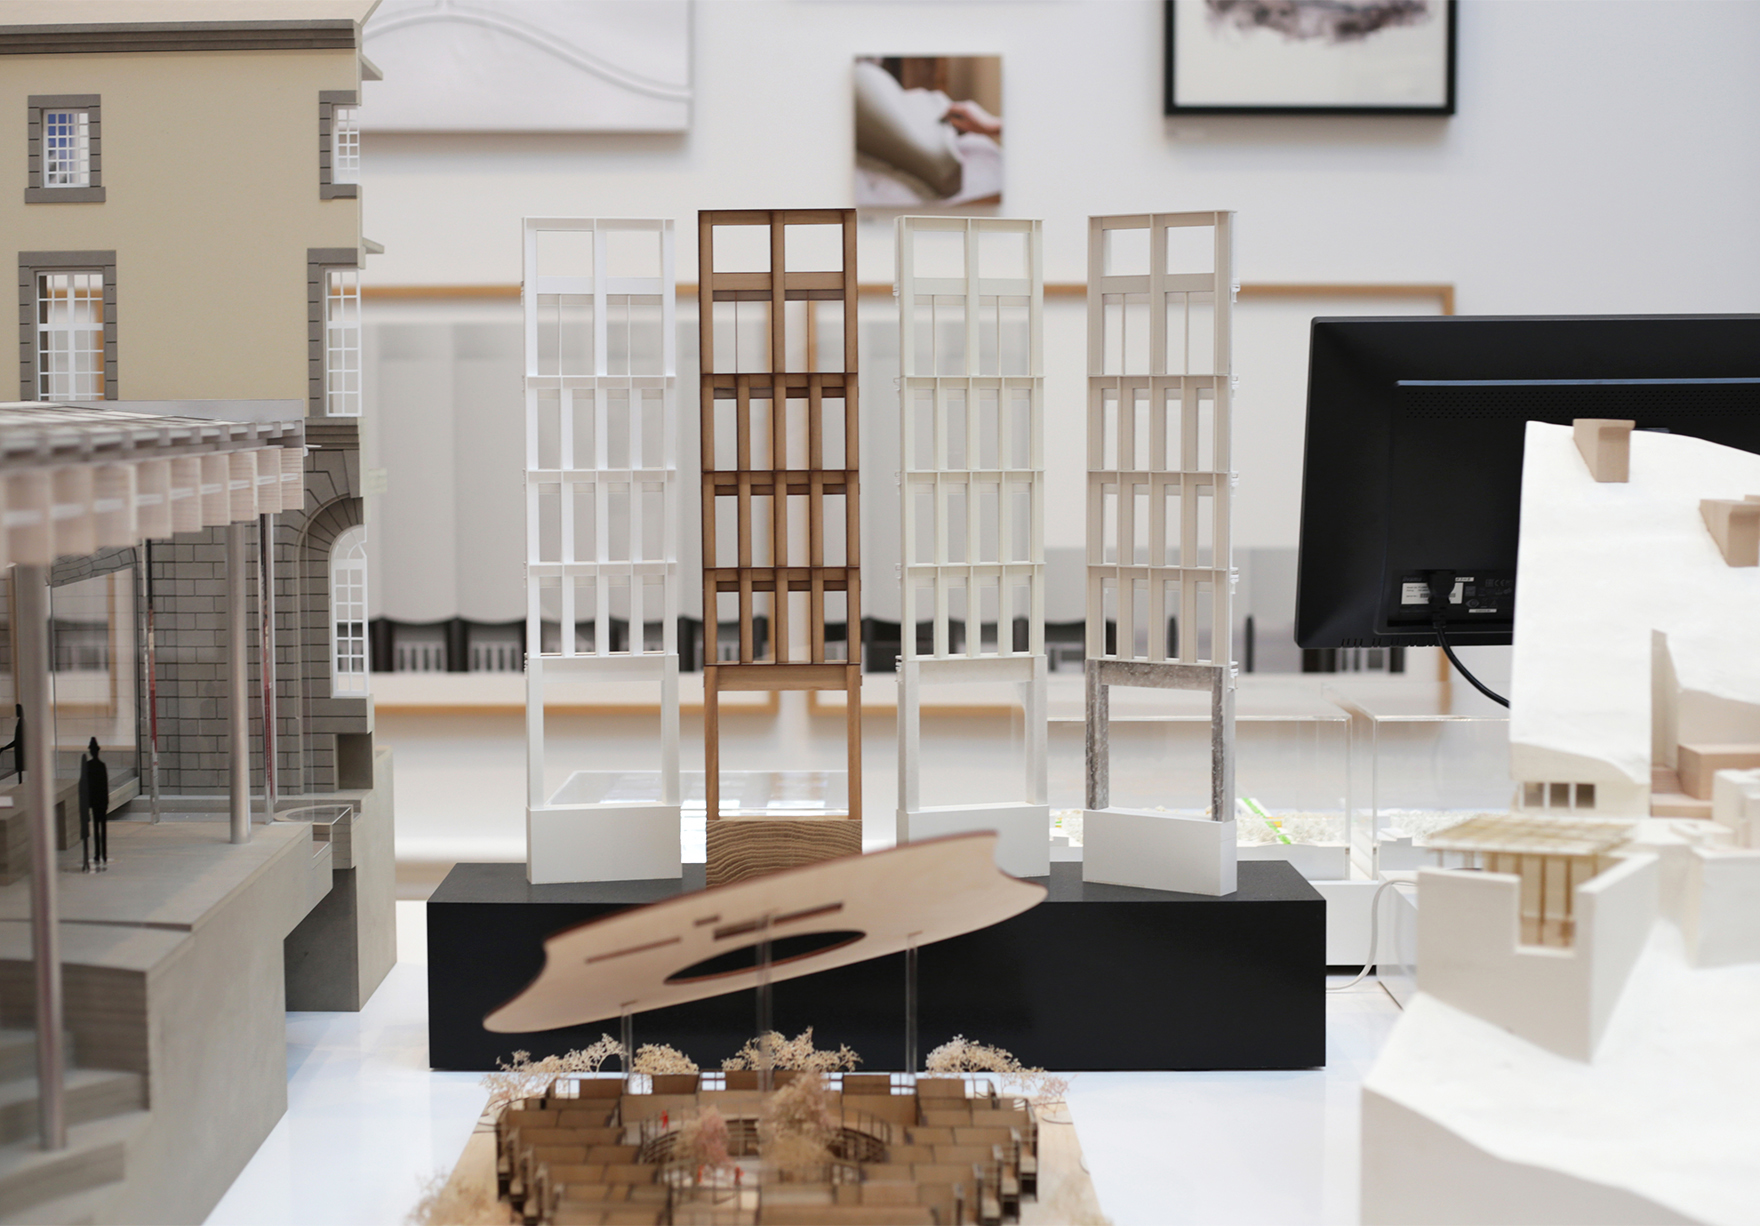 Ra Summer Exhibition Royal Academy Of Arts Faulknerbrowns Architects Sunderland City Hall Models Lh